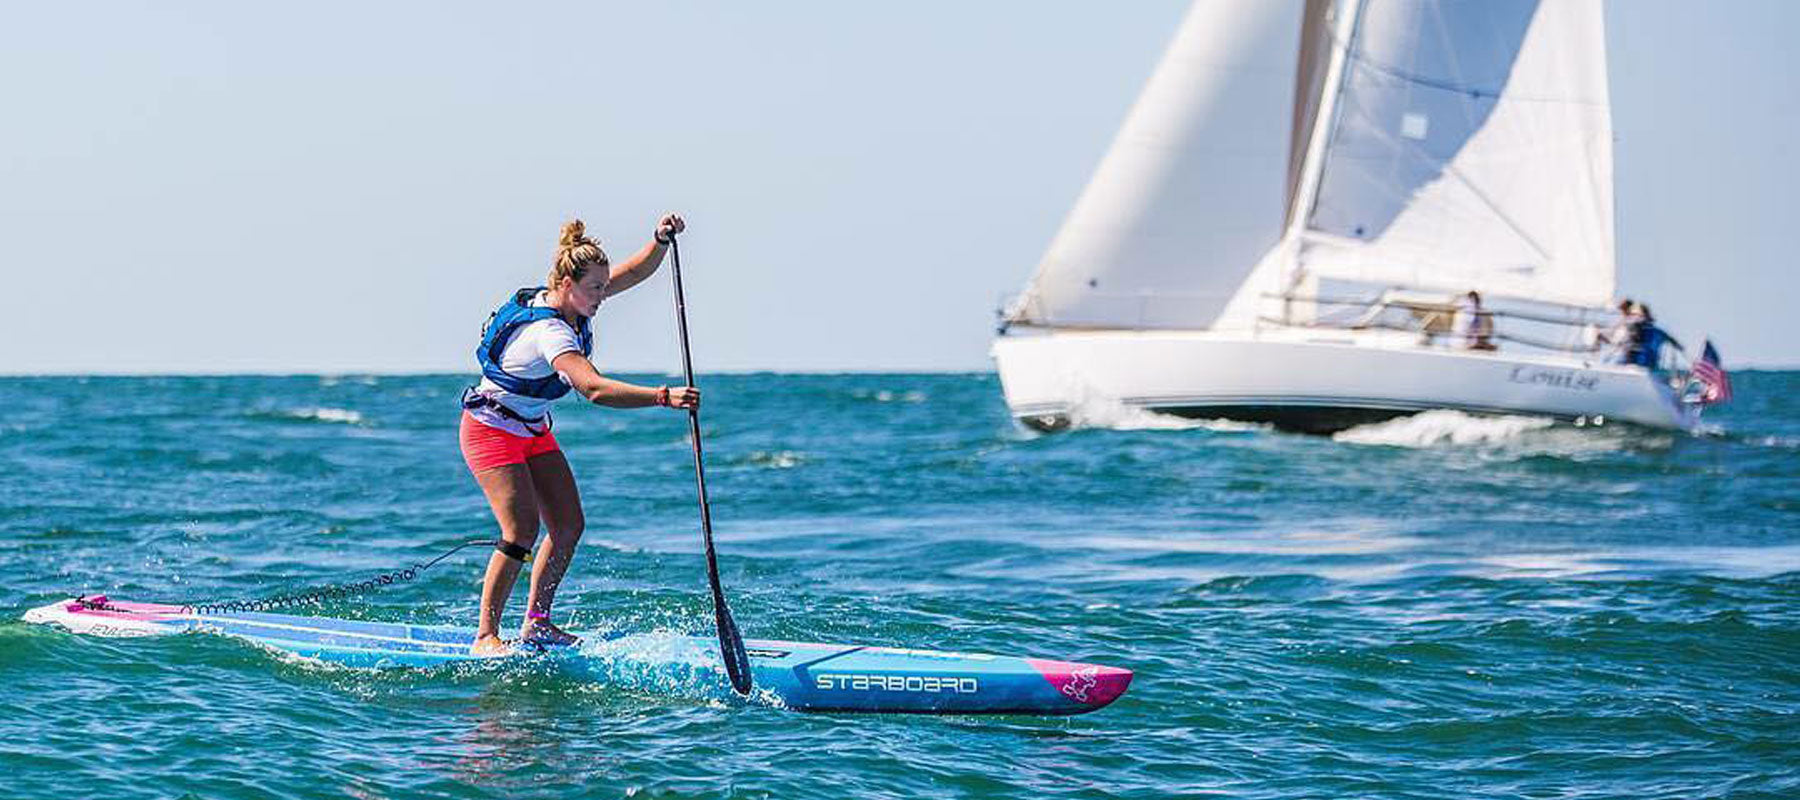 fiona wylde racing on the starboard all star